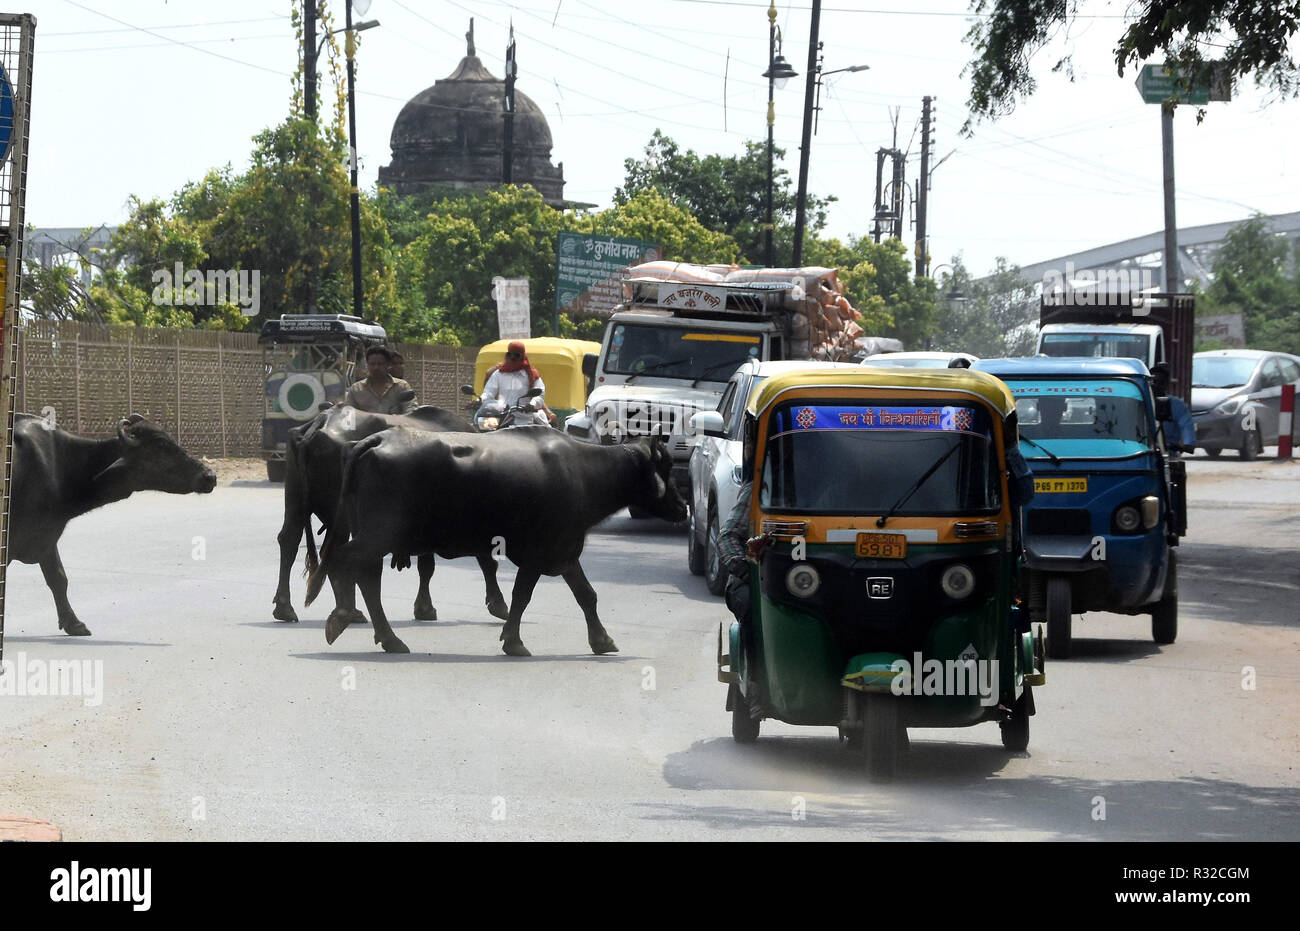 Cattle wander among traffic in a busy Rajasthan road. - Stock Image